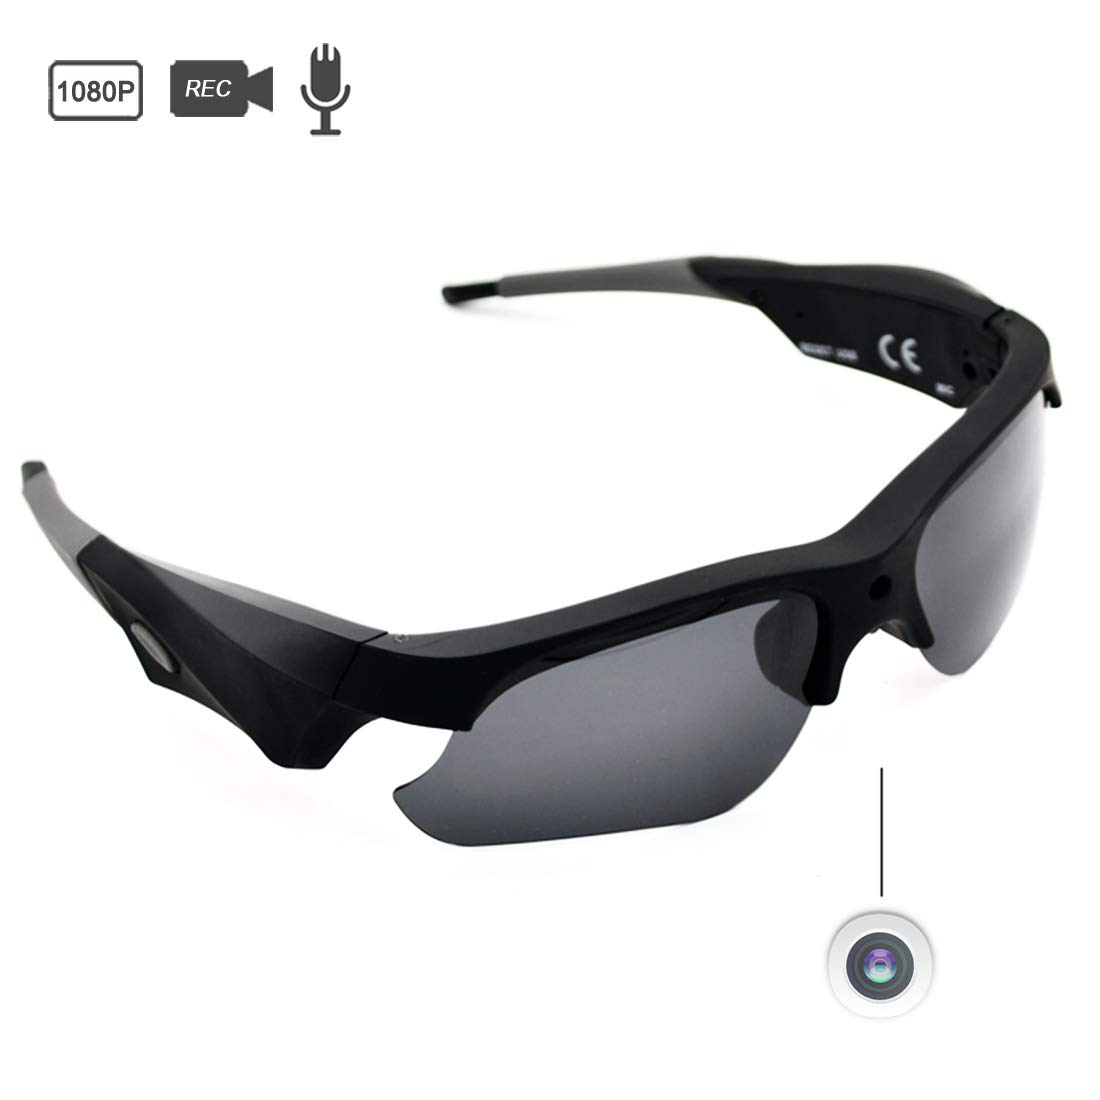 Sunglasses Camera Full HD 1080P Wide Angle for Sport,Sunsome Mini Video Camera with UV Protection Polarized Lens